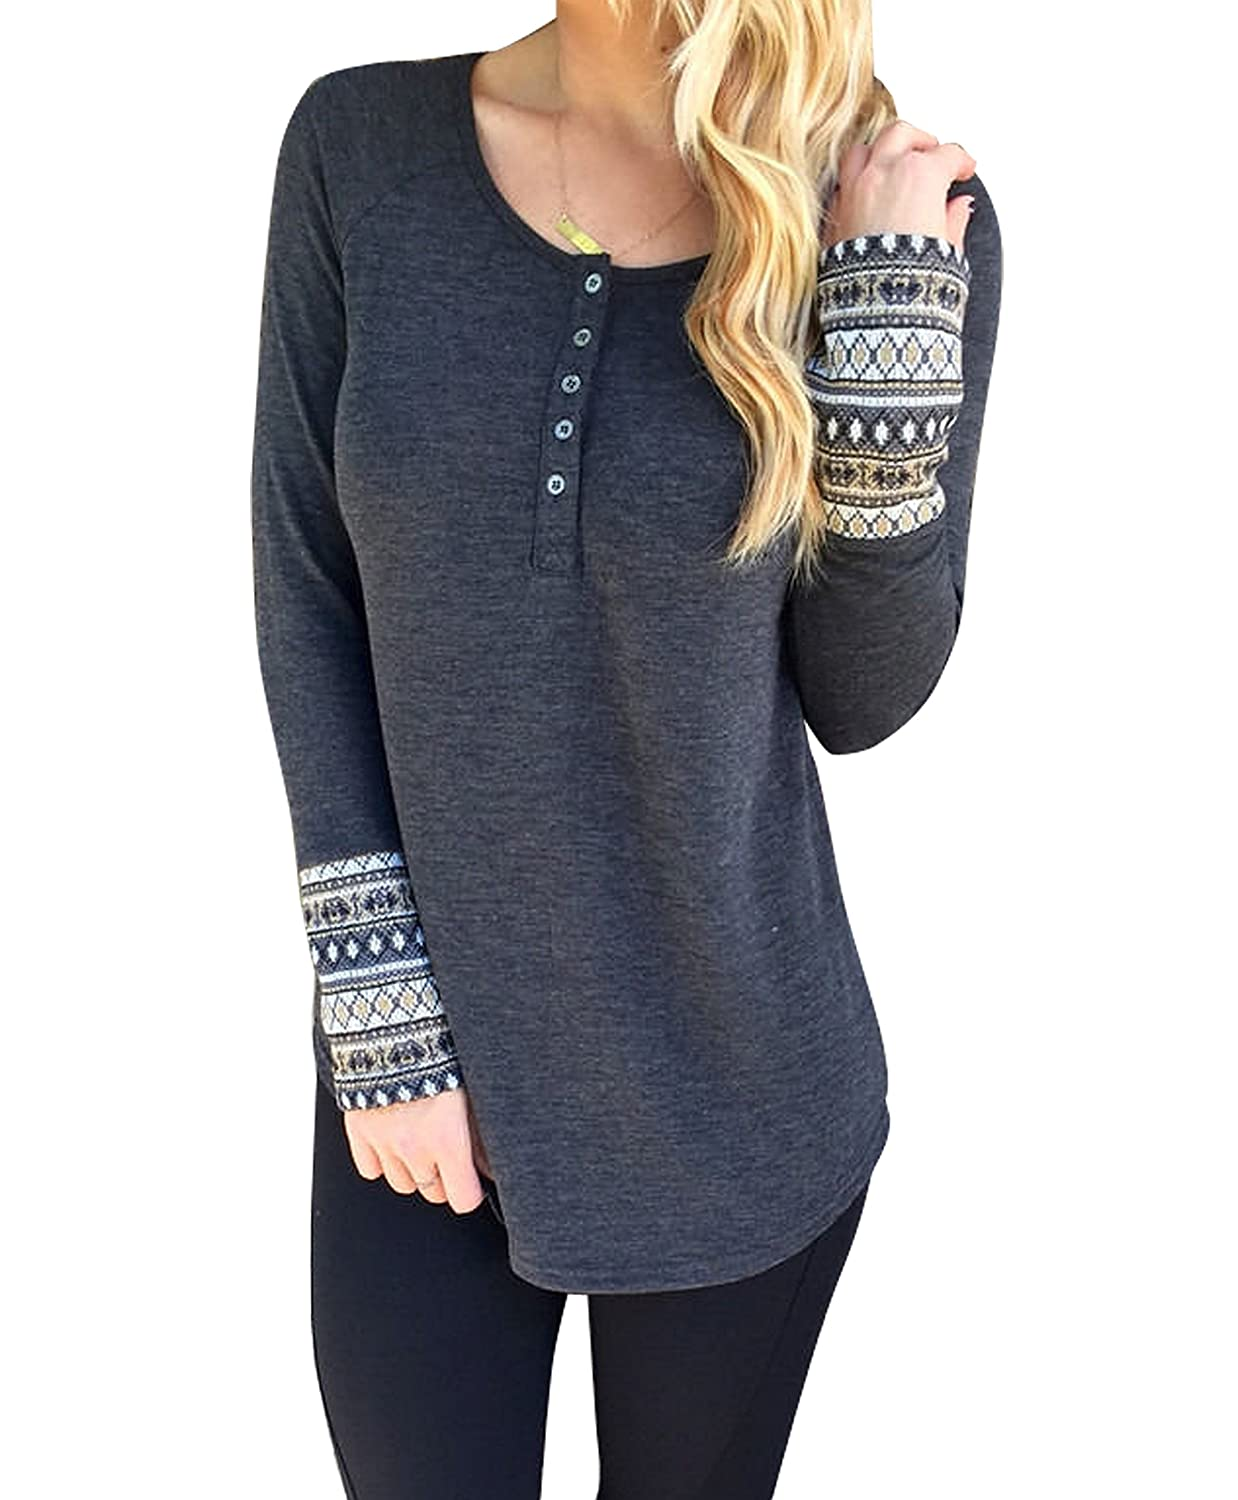 Women Round Neck Button Down Long Sleeve Loose Knit Sweater Jumper Top Grey